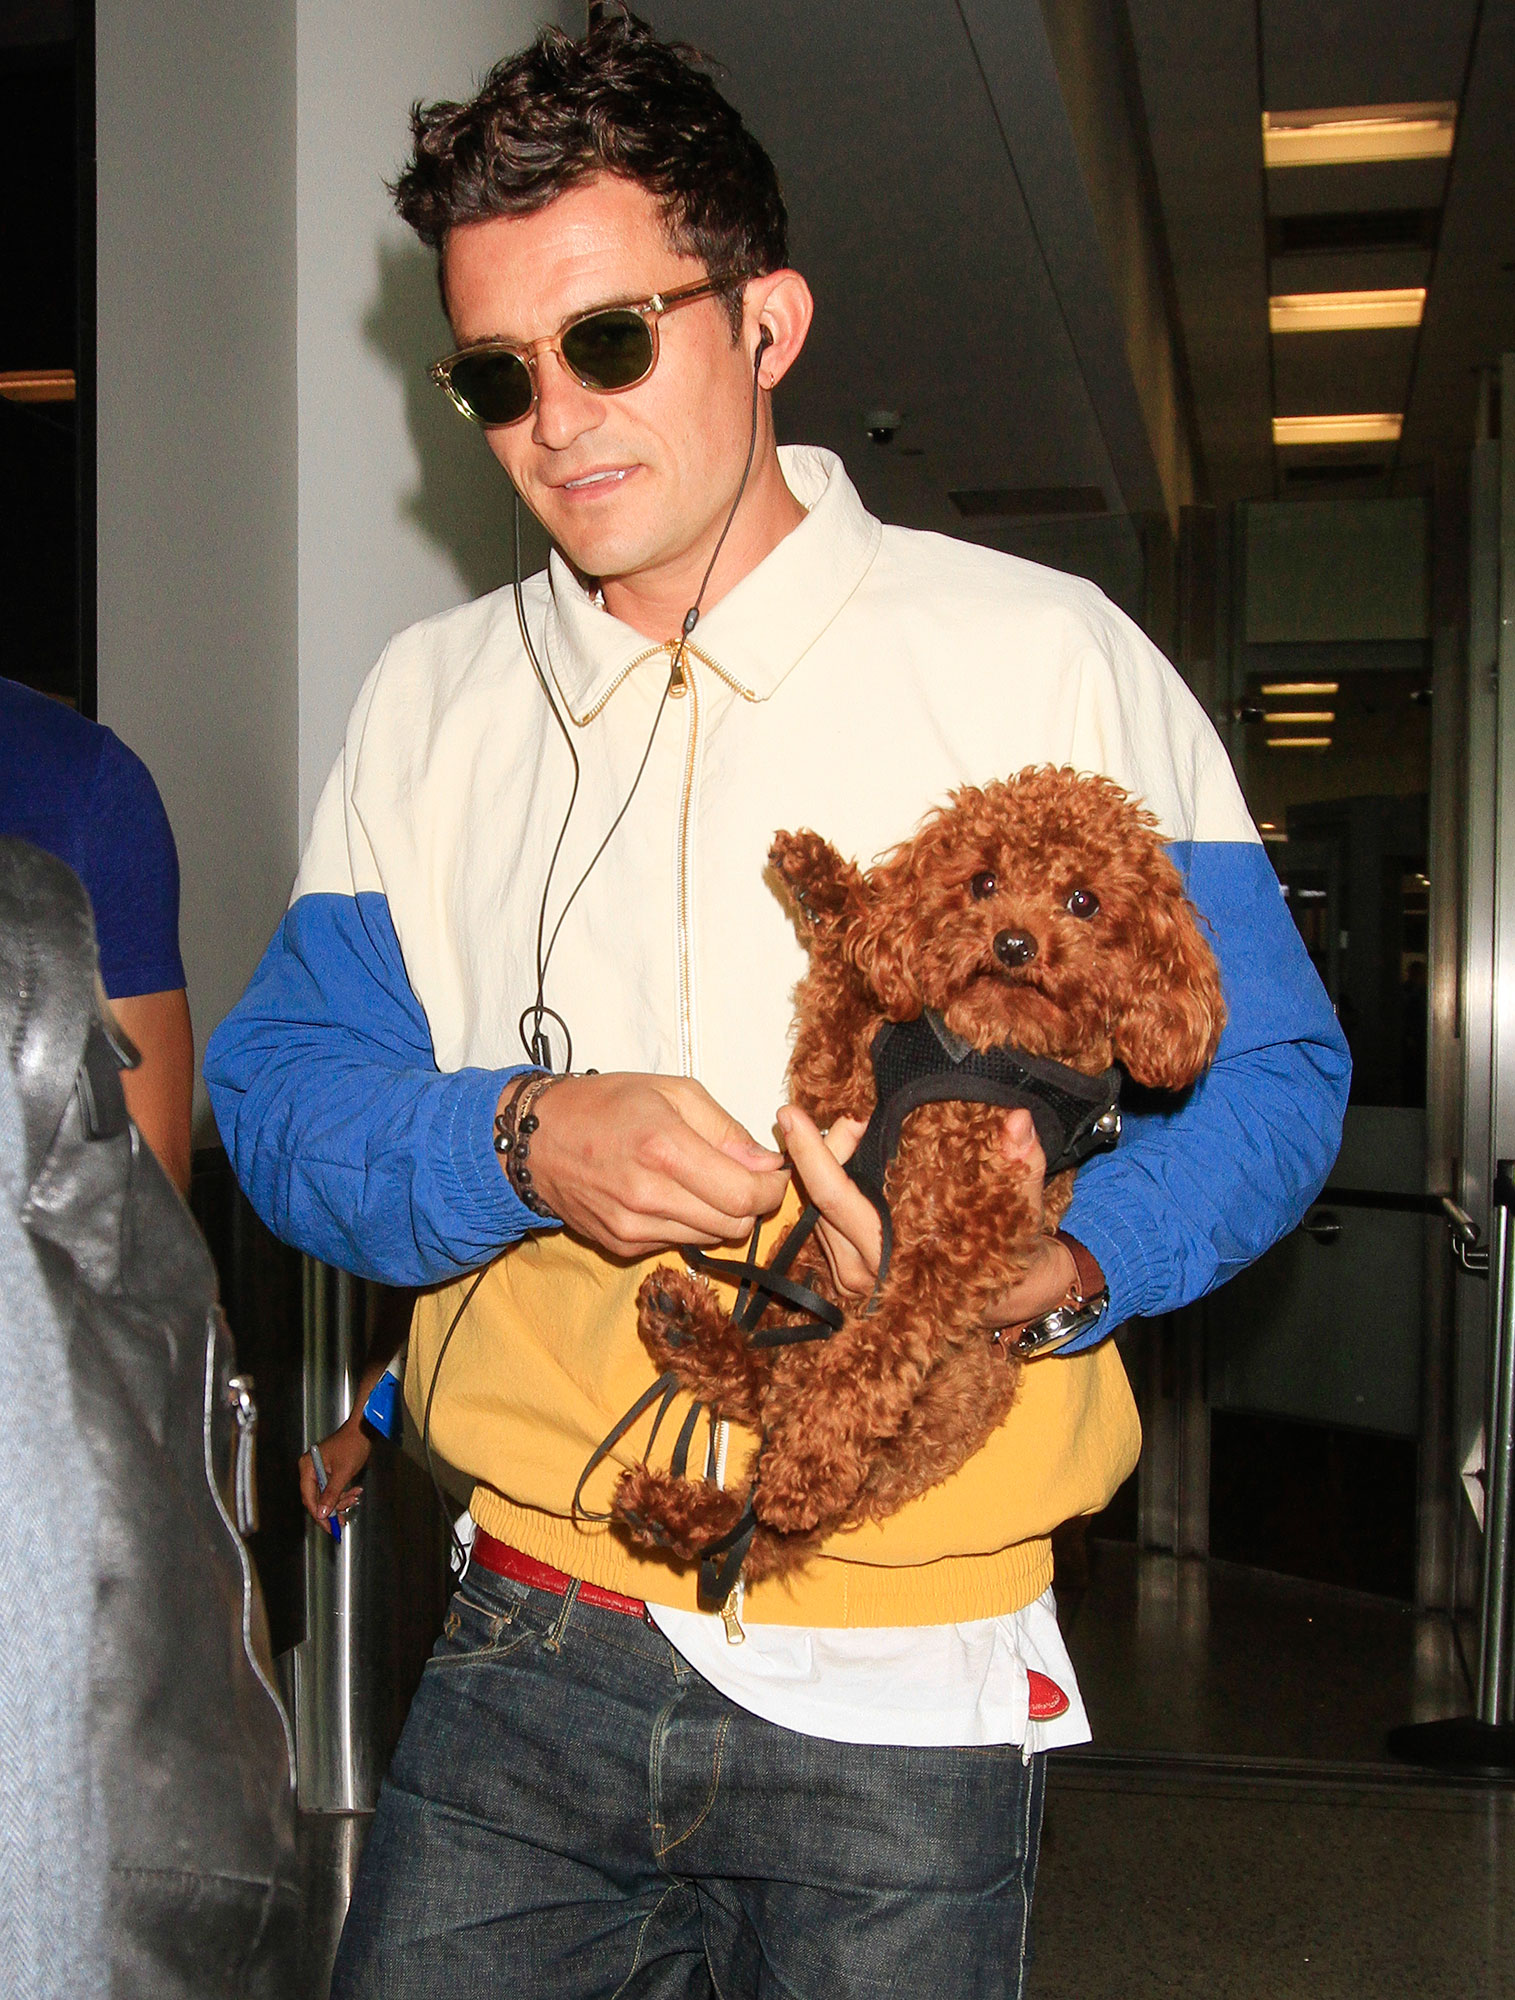 Orlando Bloom is seen with his adorable dog after being spotted with Leonardo DiCaprio and after Katy Perry discussed how good the English actor is in bed.